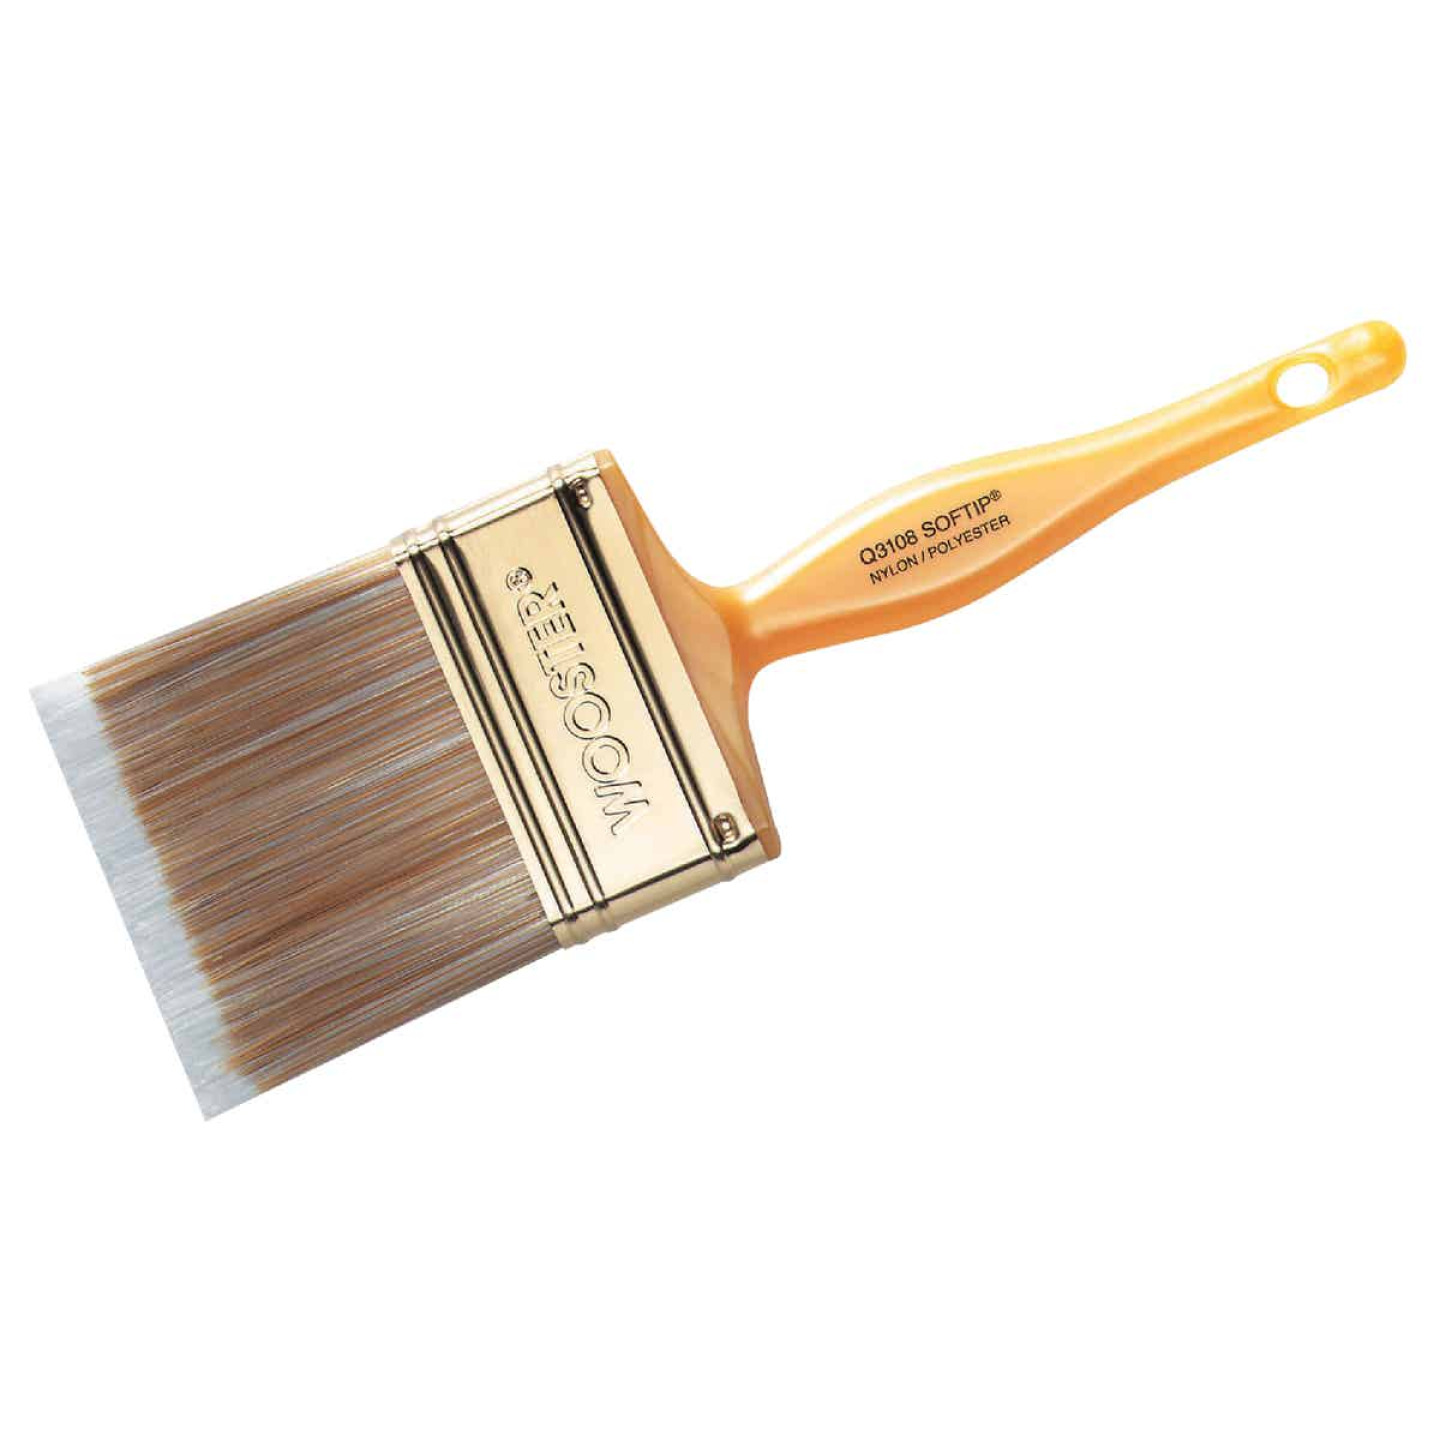 Wooster Softip 2-1/2 In. Flat Sash Paint Brush Image 1